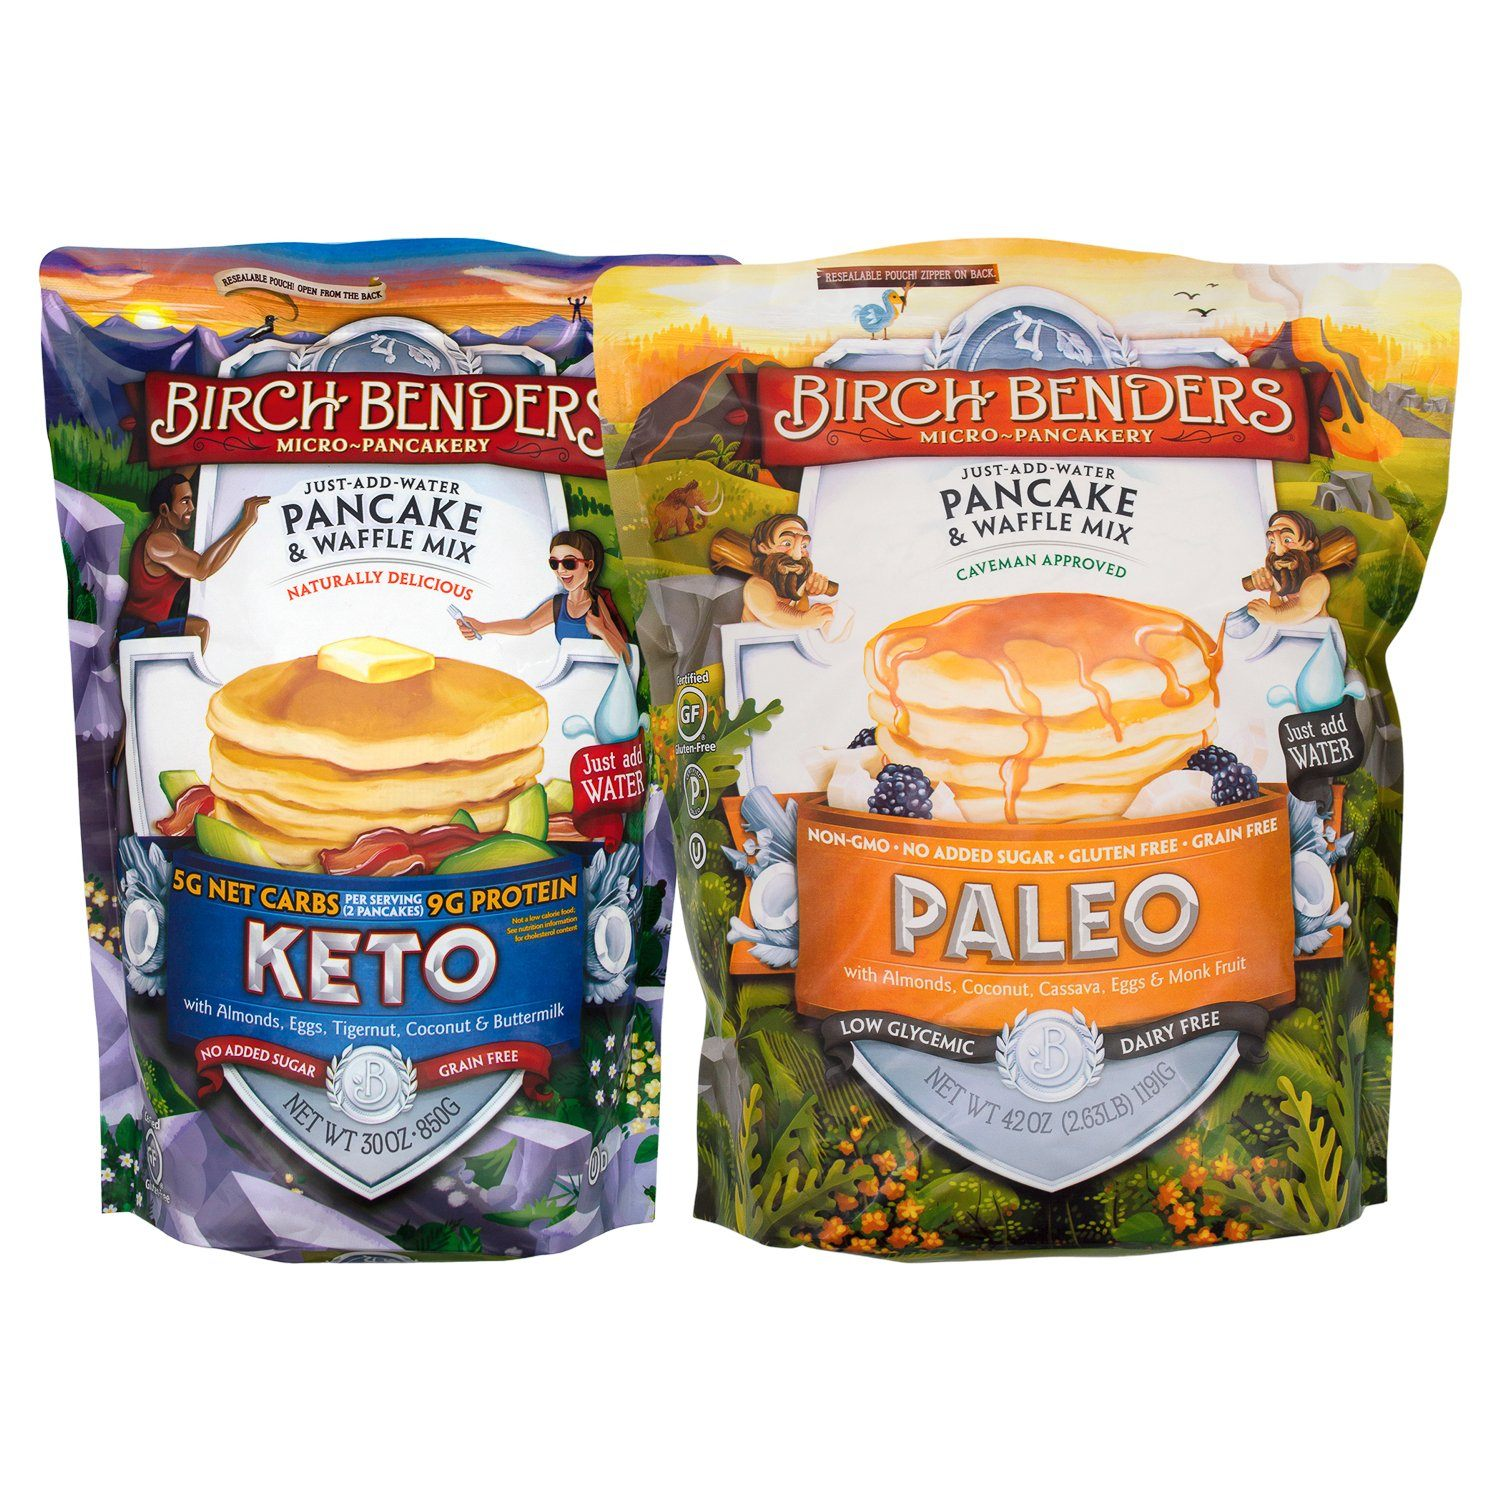 Birch Benders Pancake & Waffle Mix Birch Benders